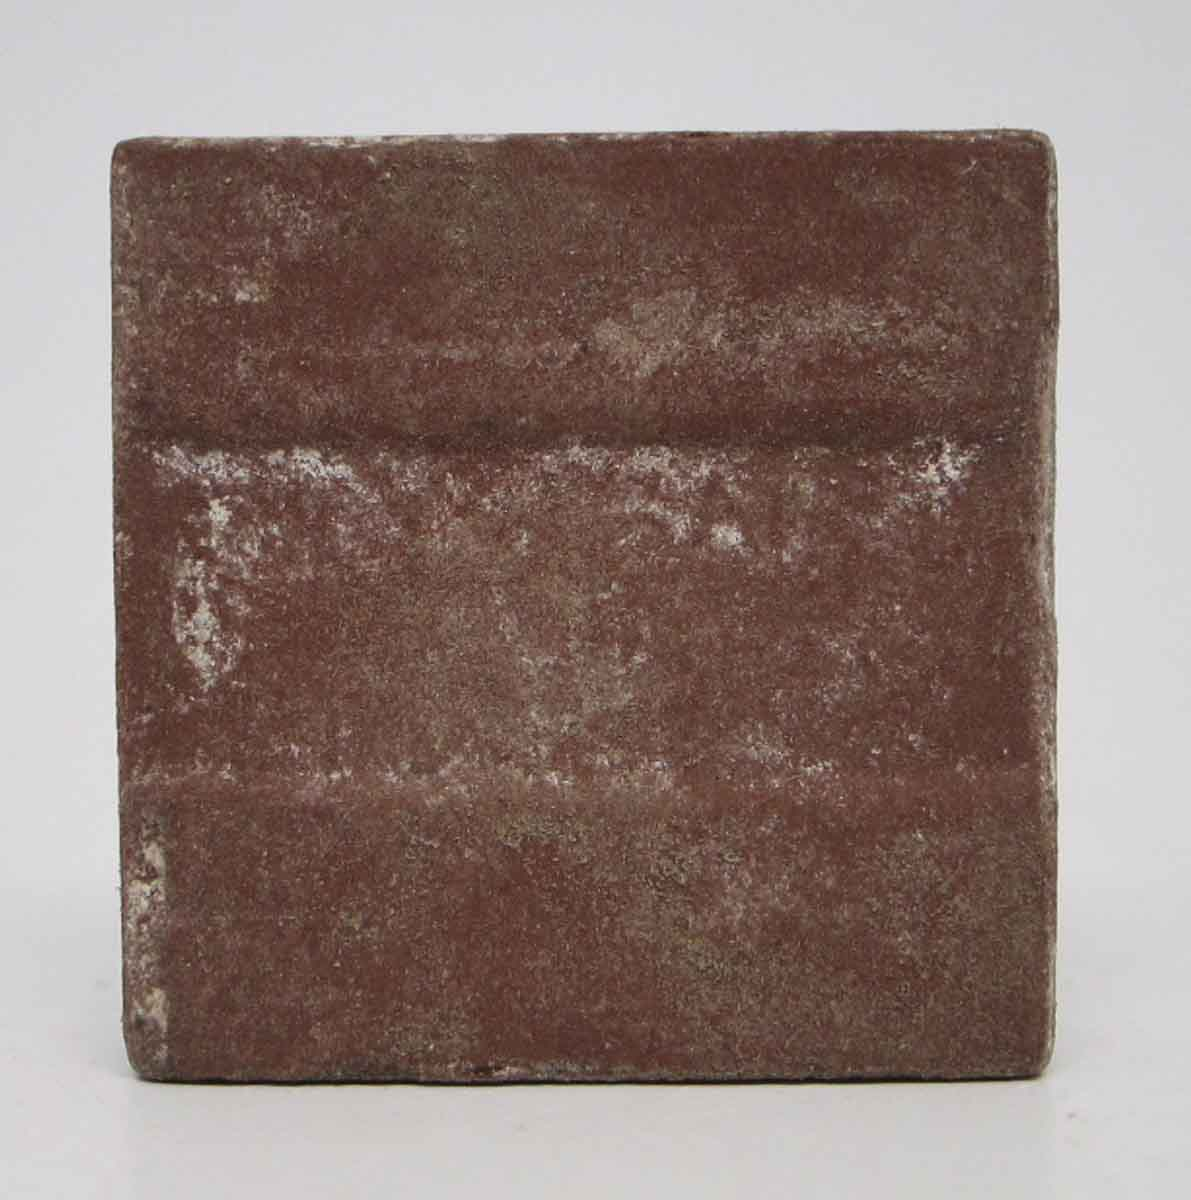 Set Of 55 Burgundy Small Square Floor Tiles Olde Good Things